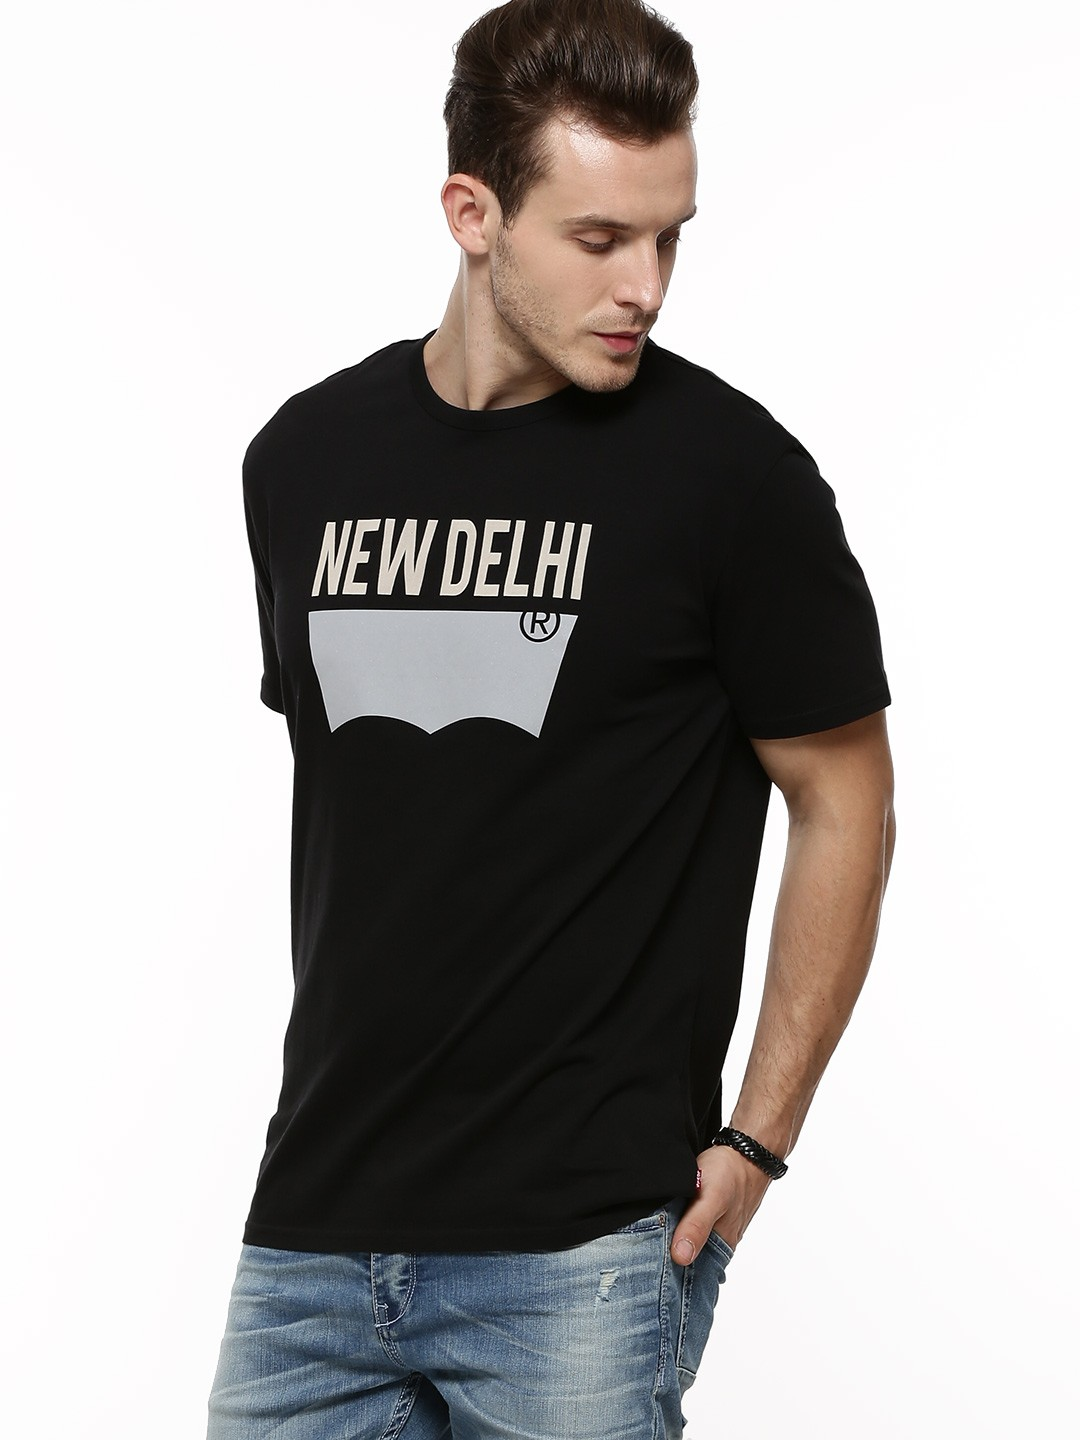 buy levi 39 s batwing logo 39 delhi 39 t shirt for men men 39 s. Black Bedroom Furniture Sets. Home Design Ideas